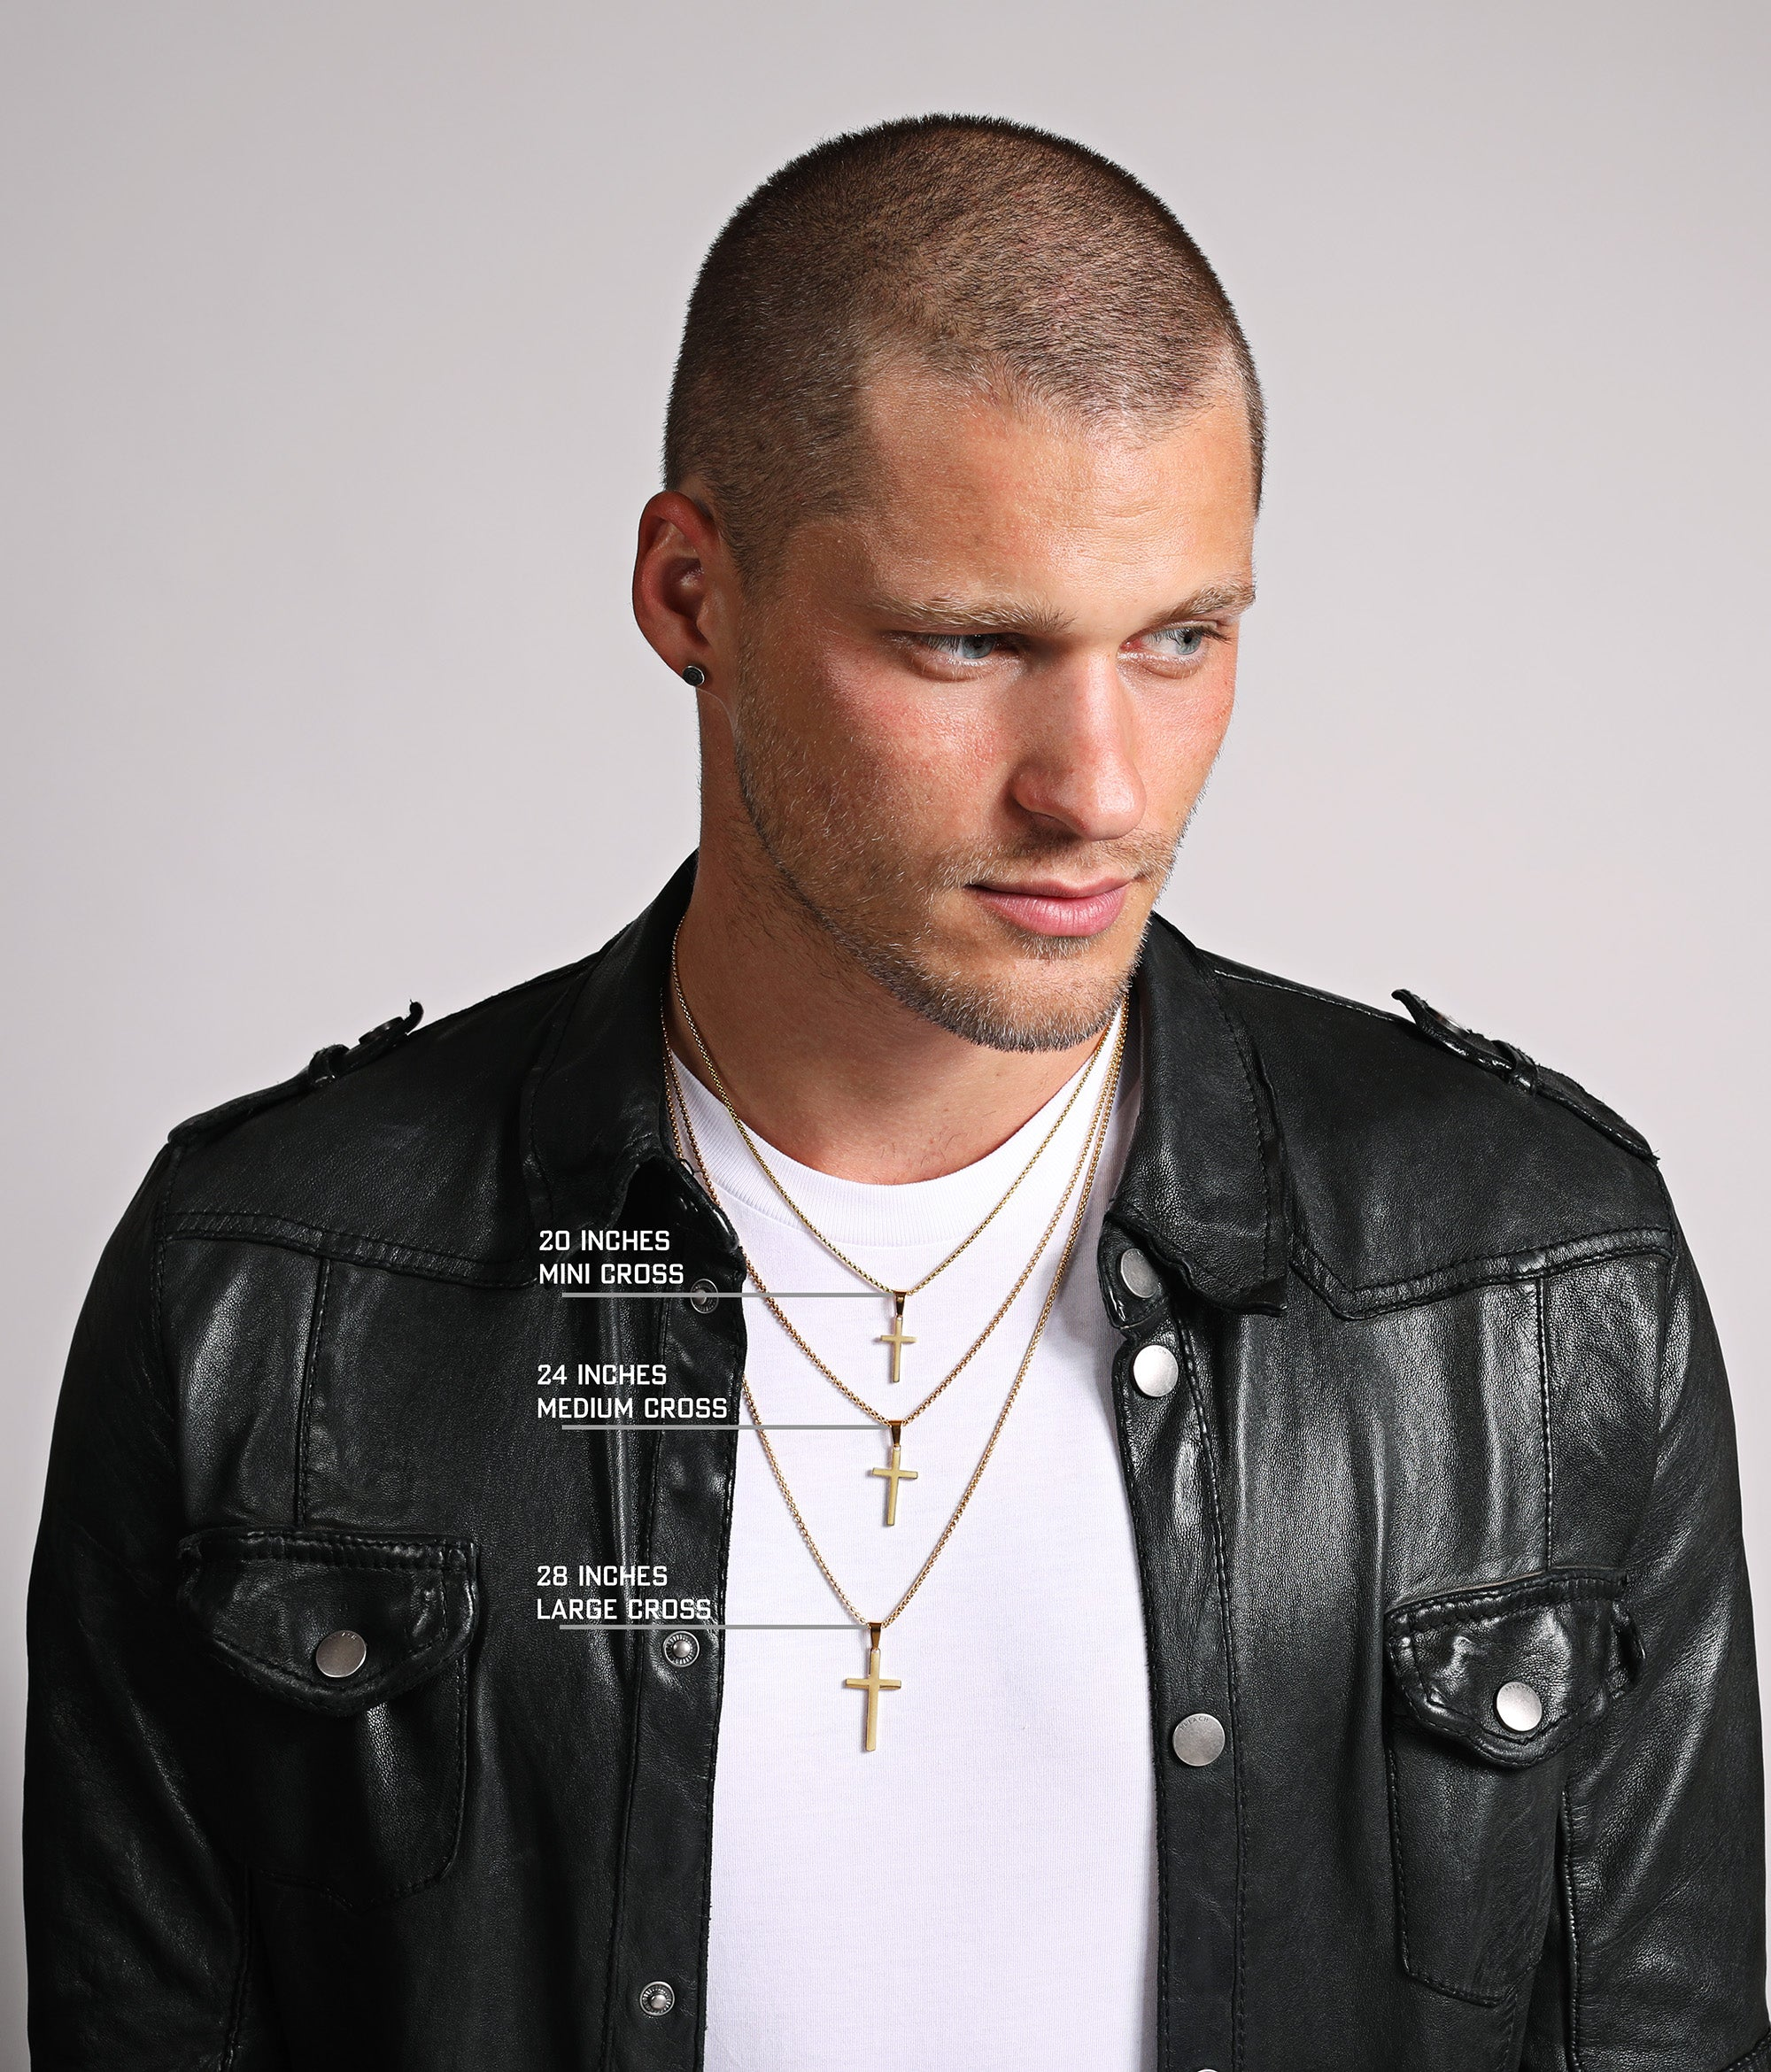 Men's Gold Cross Necklaces